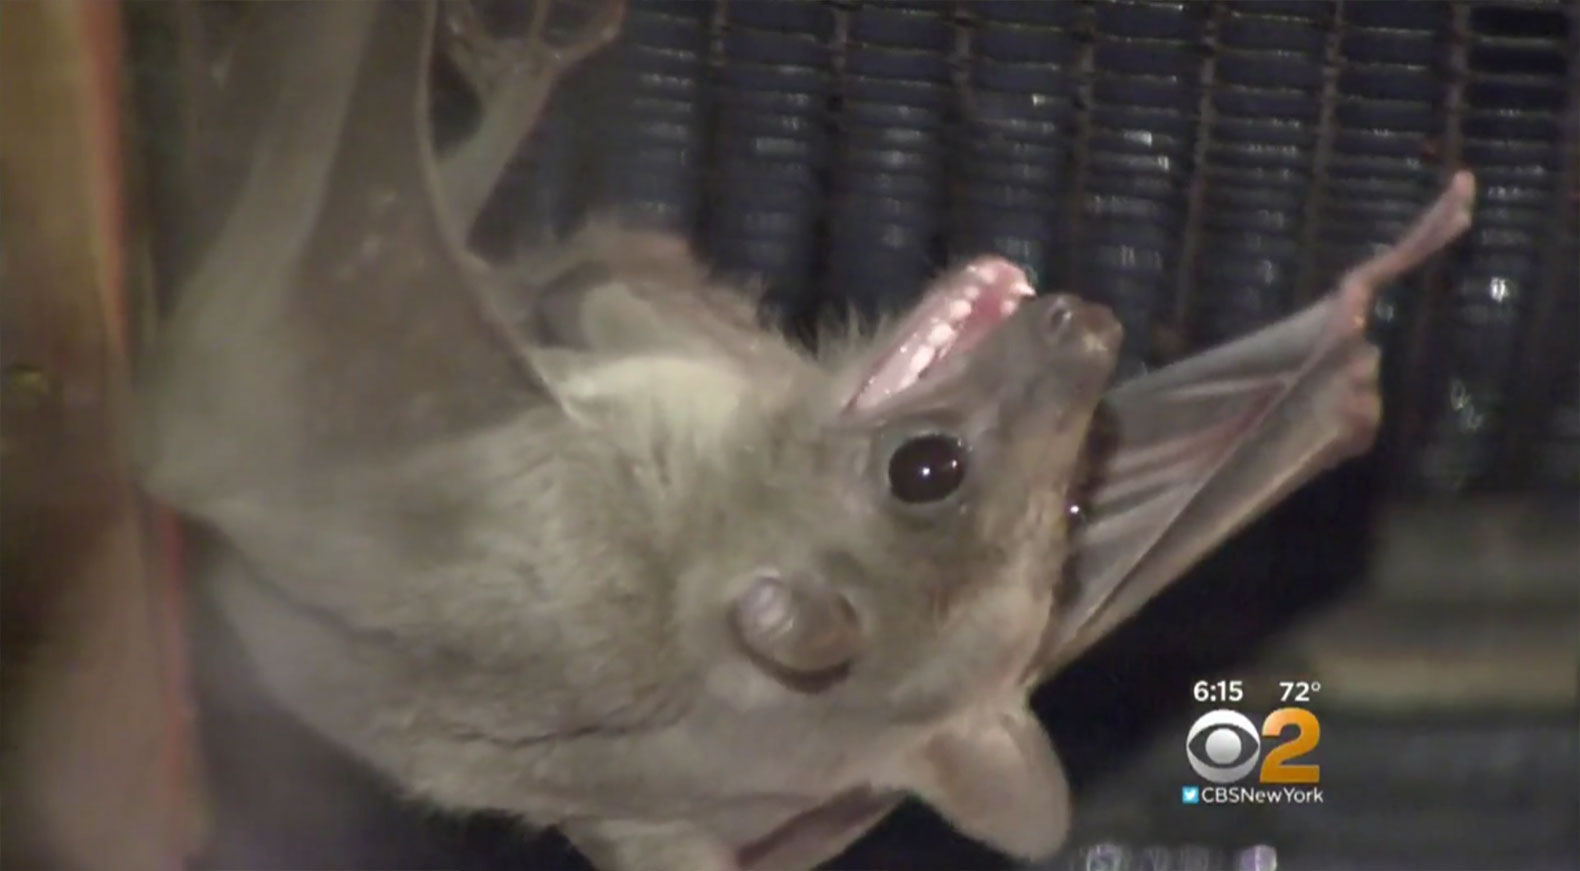 Long Island welcomes bats that can eat 1,000 mosquitoes an hour to fight Zika